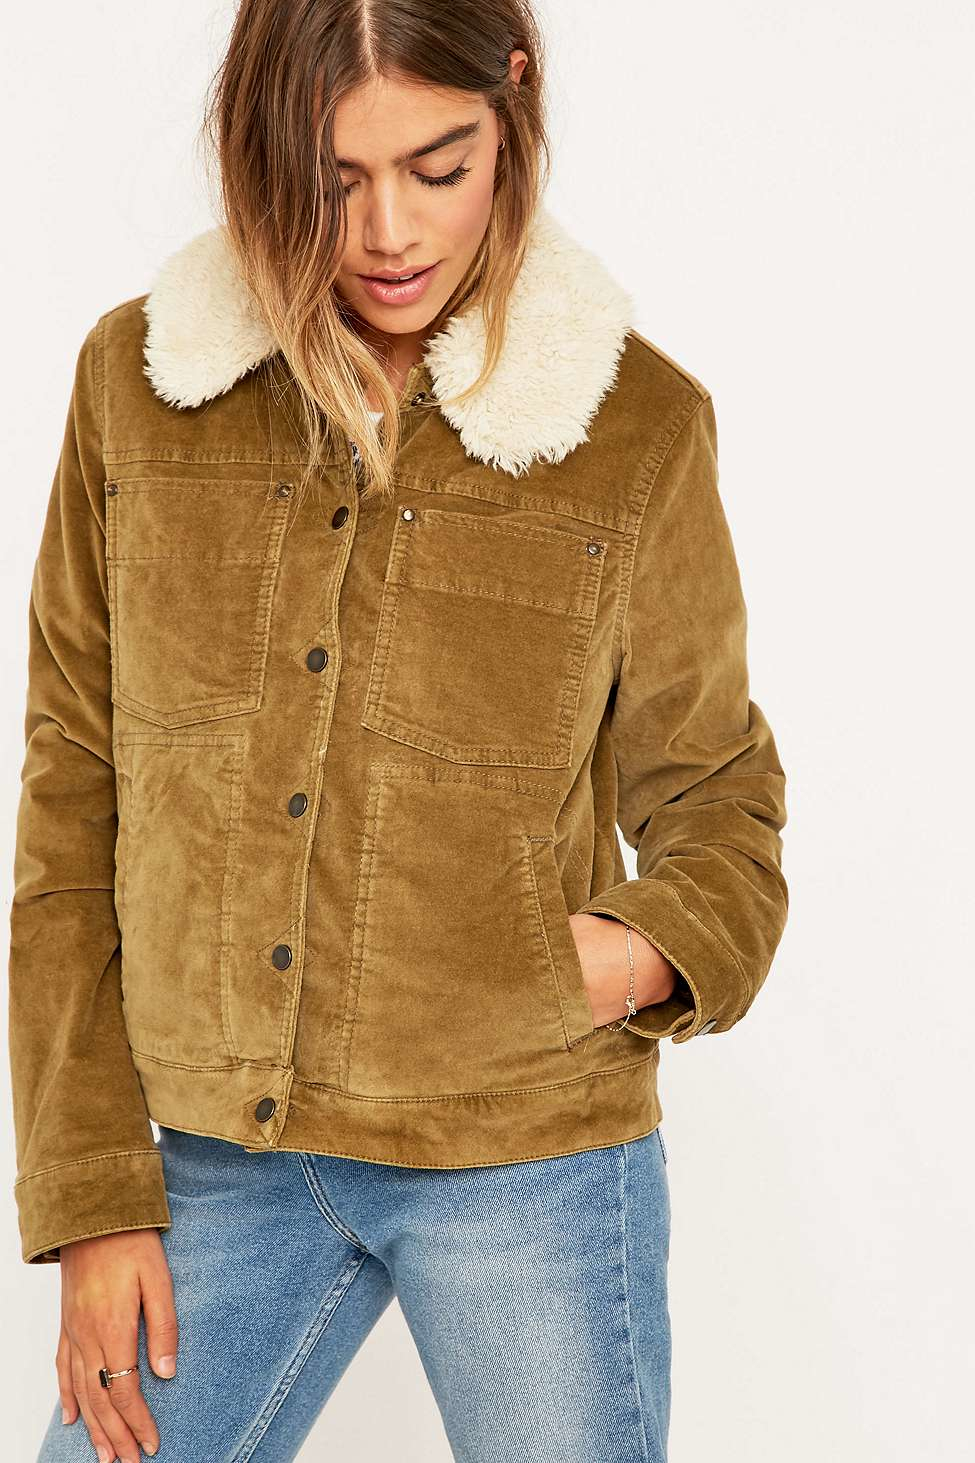 Free People Corduroy Sherpa Jacket In Metallic Lyst